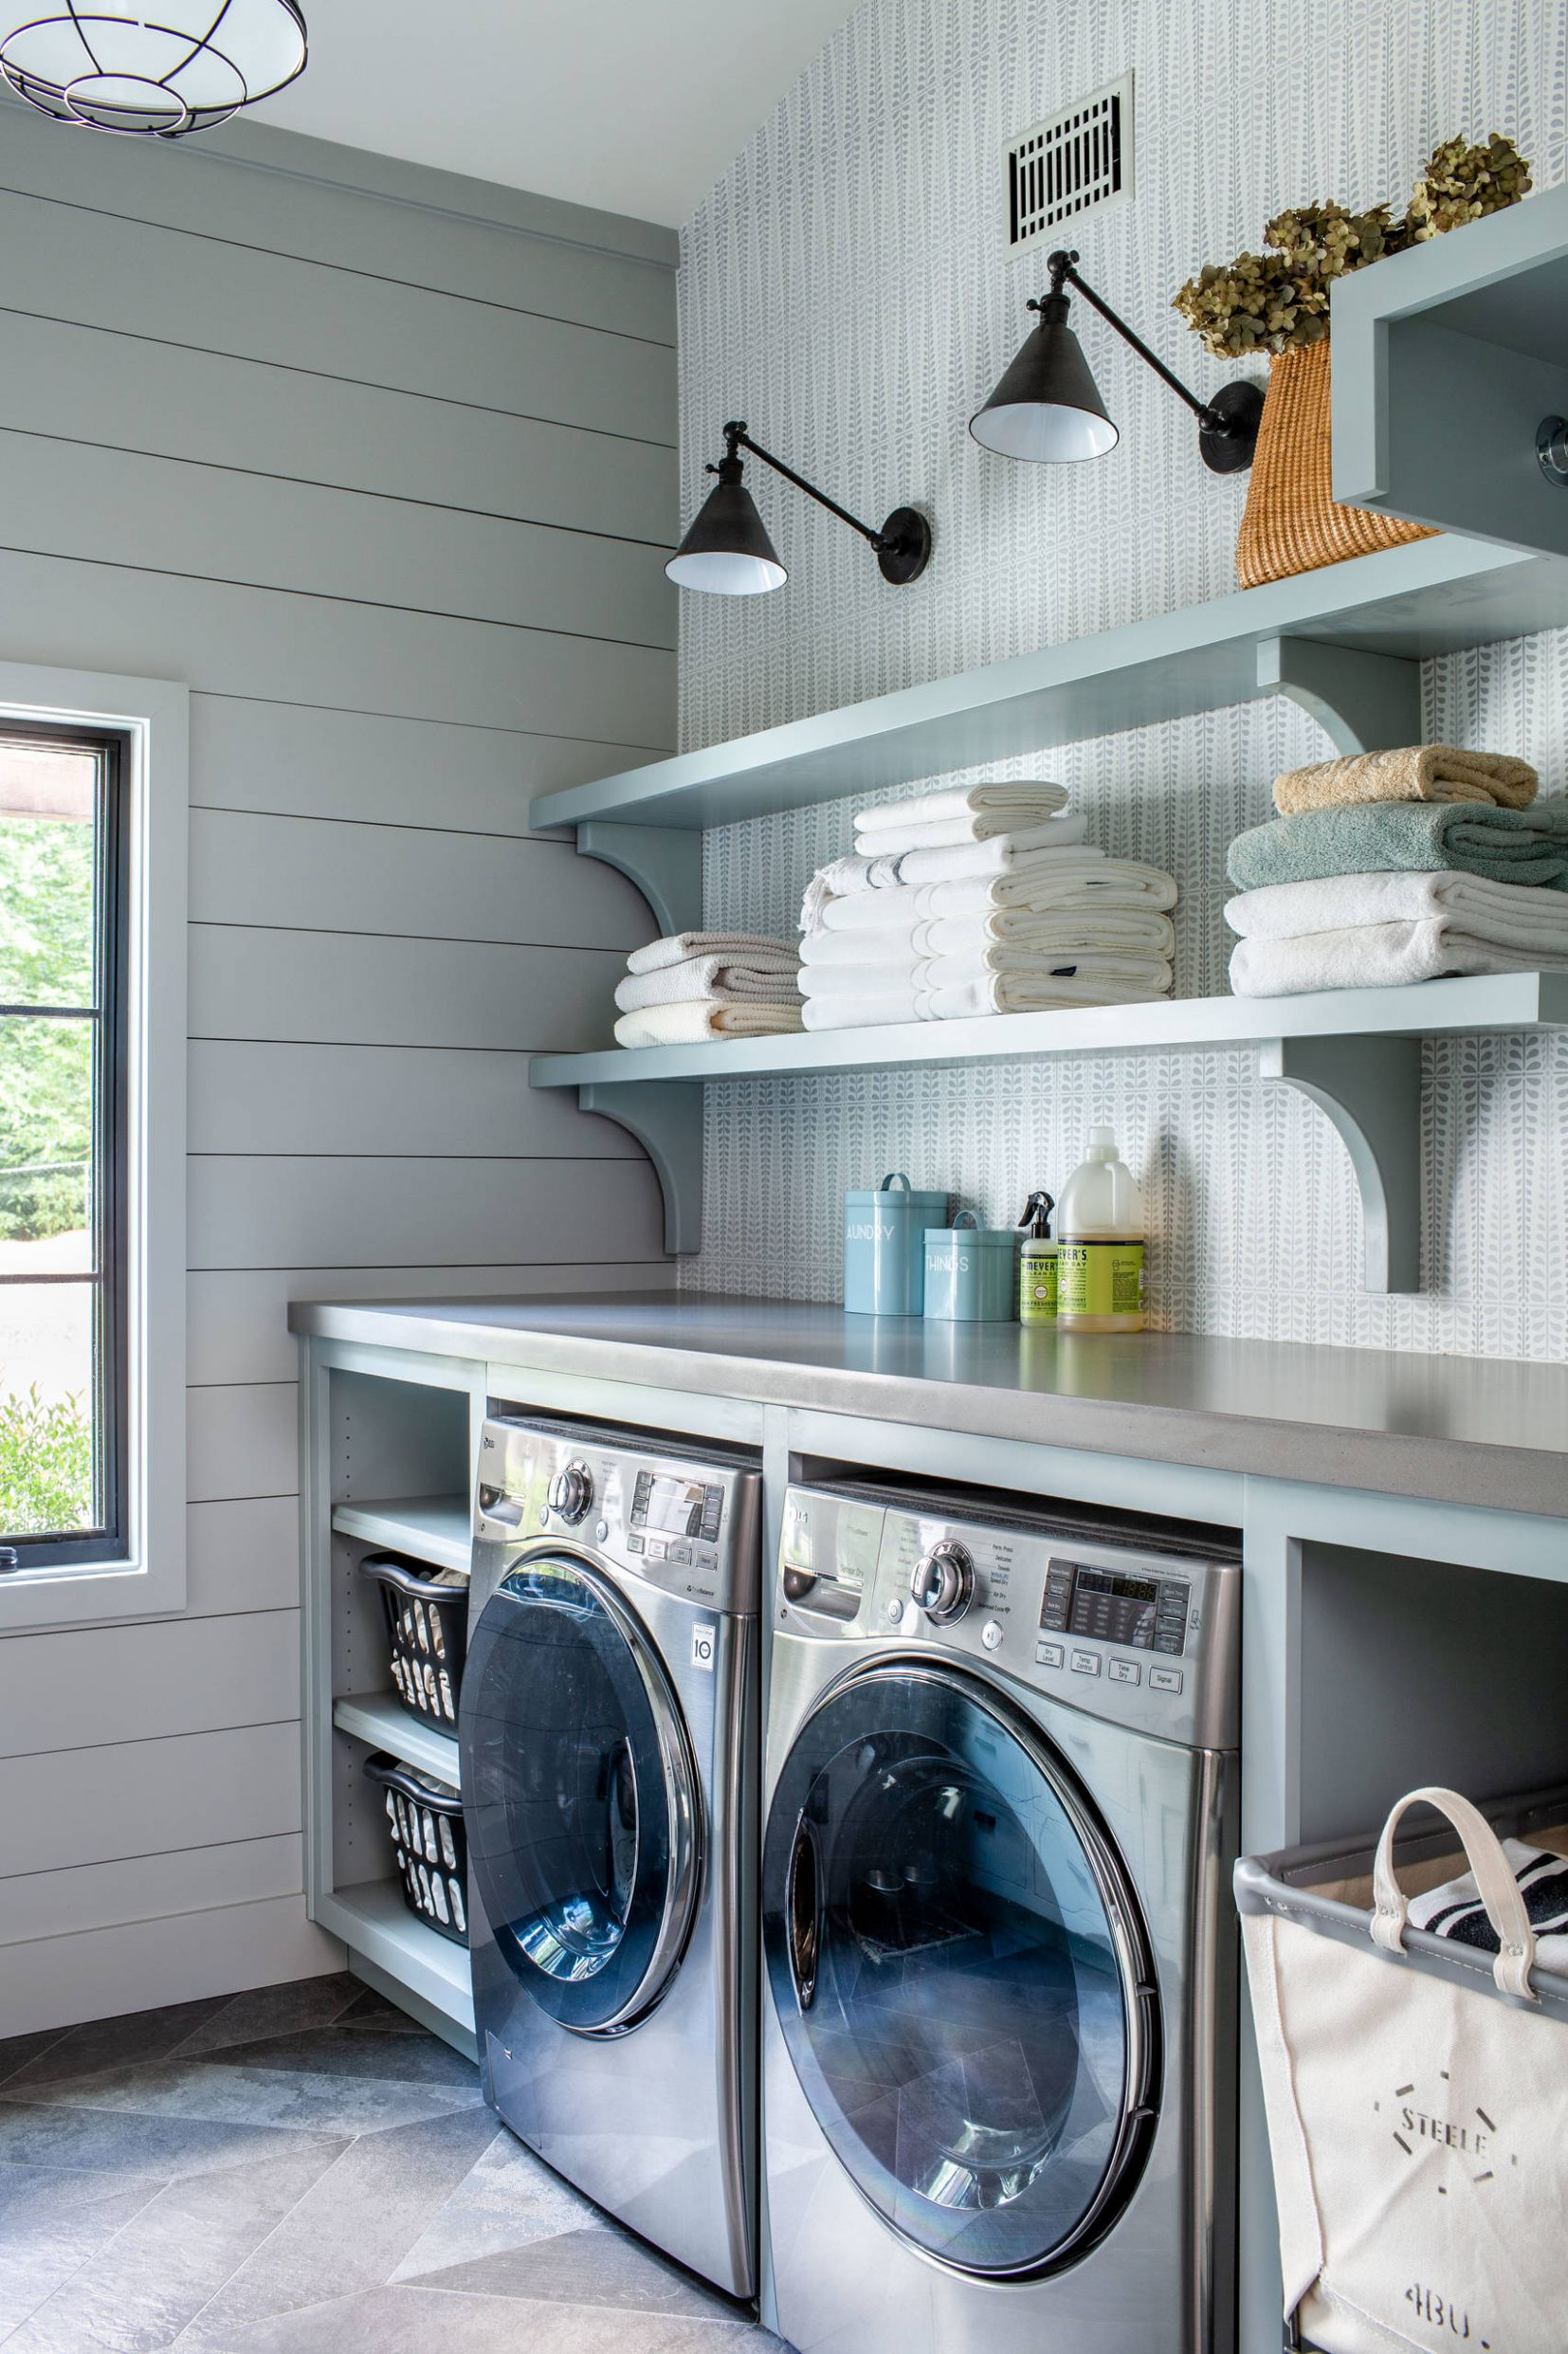 10 Beautiful Laundry Room Pictures & Ideas | Houzz